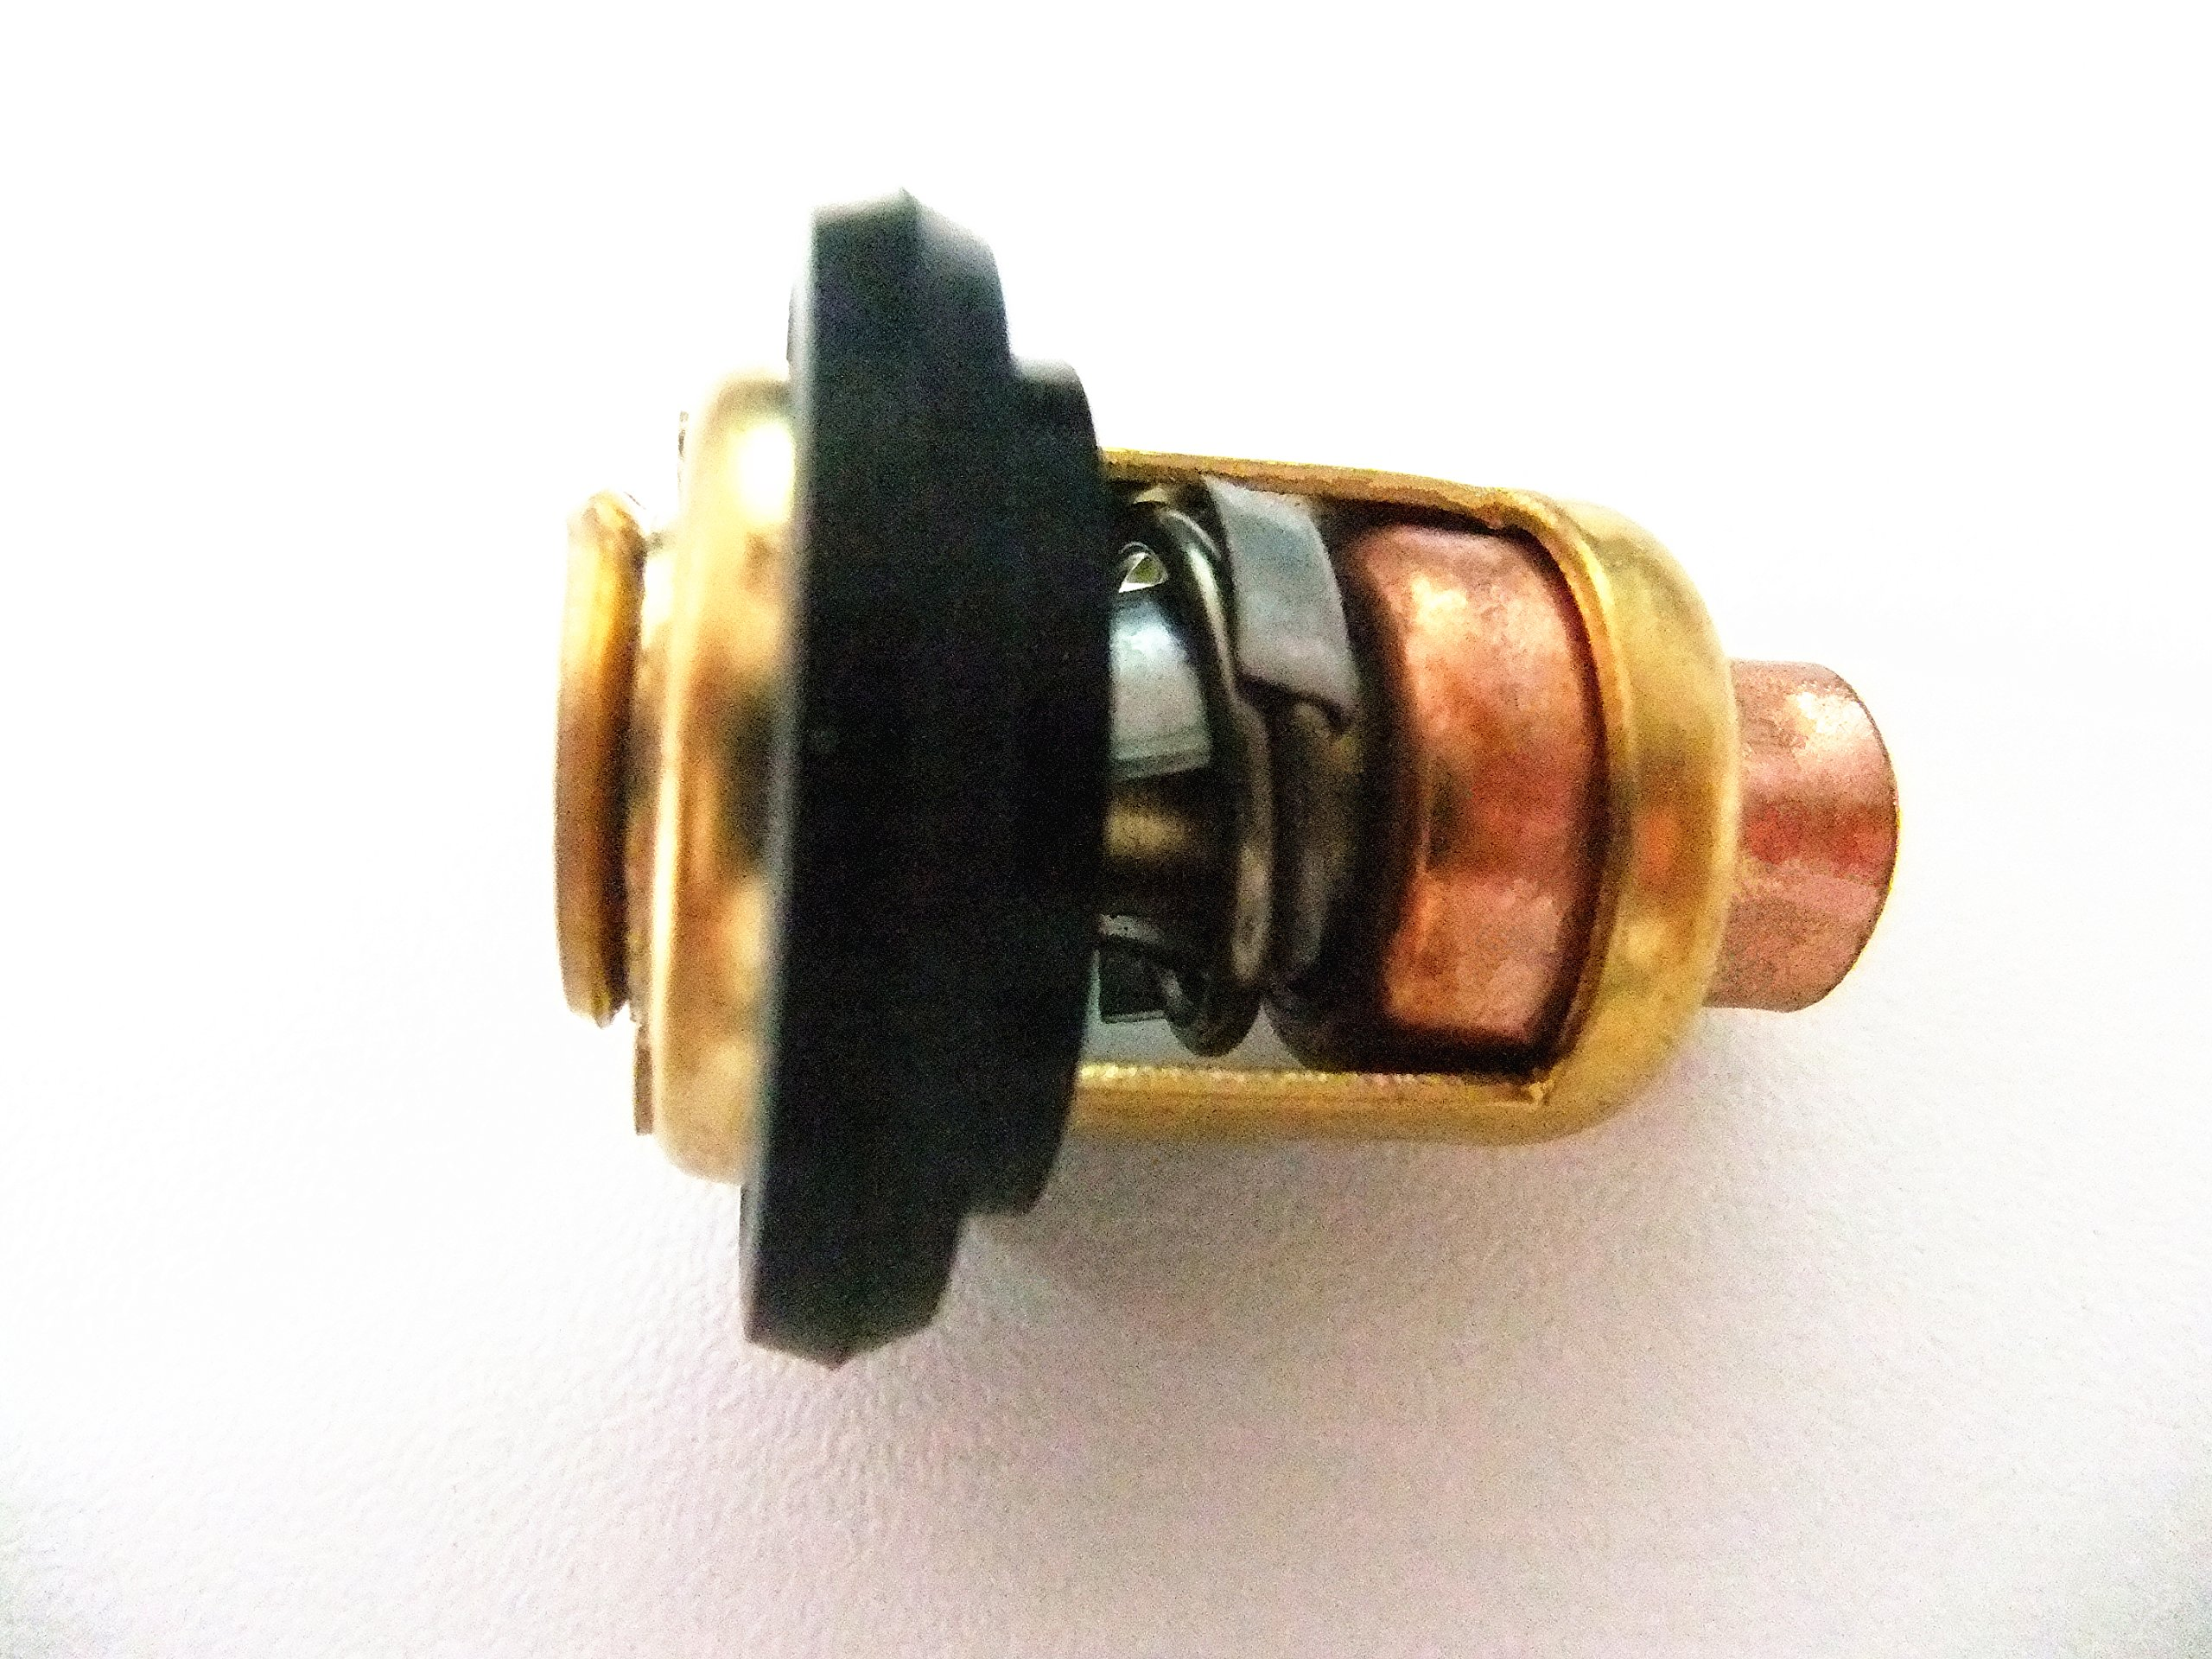 688-12411 6H3-12411 6E5-12411 Boat Motor Boat Motor Thermostat for Yamaha 2-Stroke 3HP 15HP 25HP 30HP 40HP - 250HP Outboard Engine